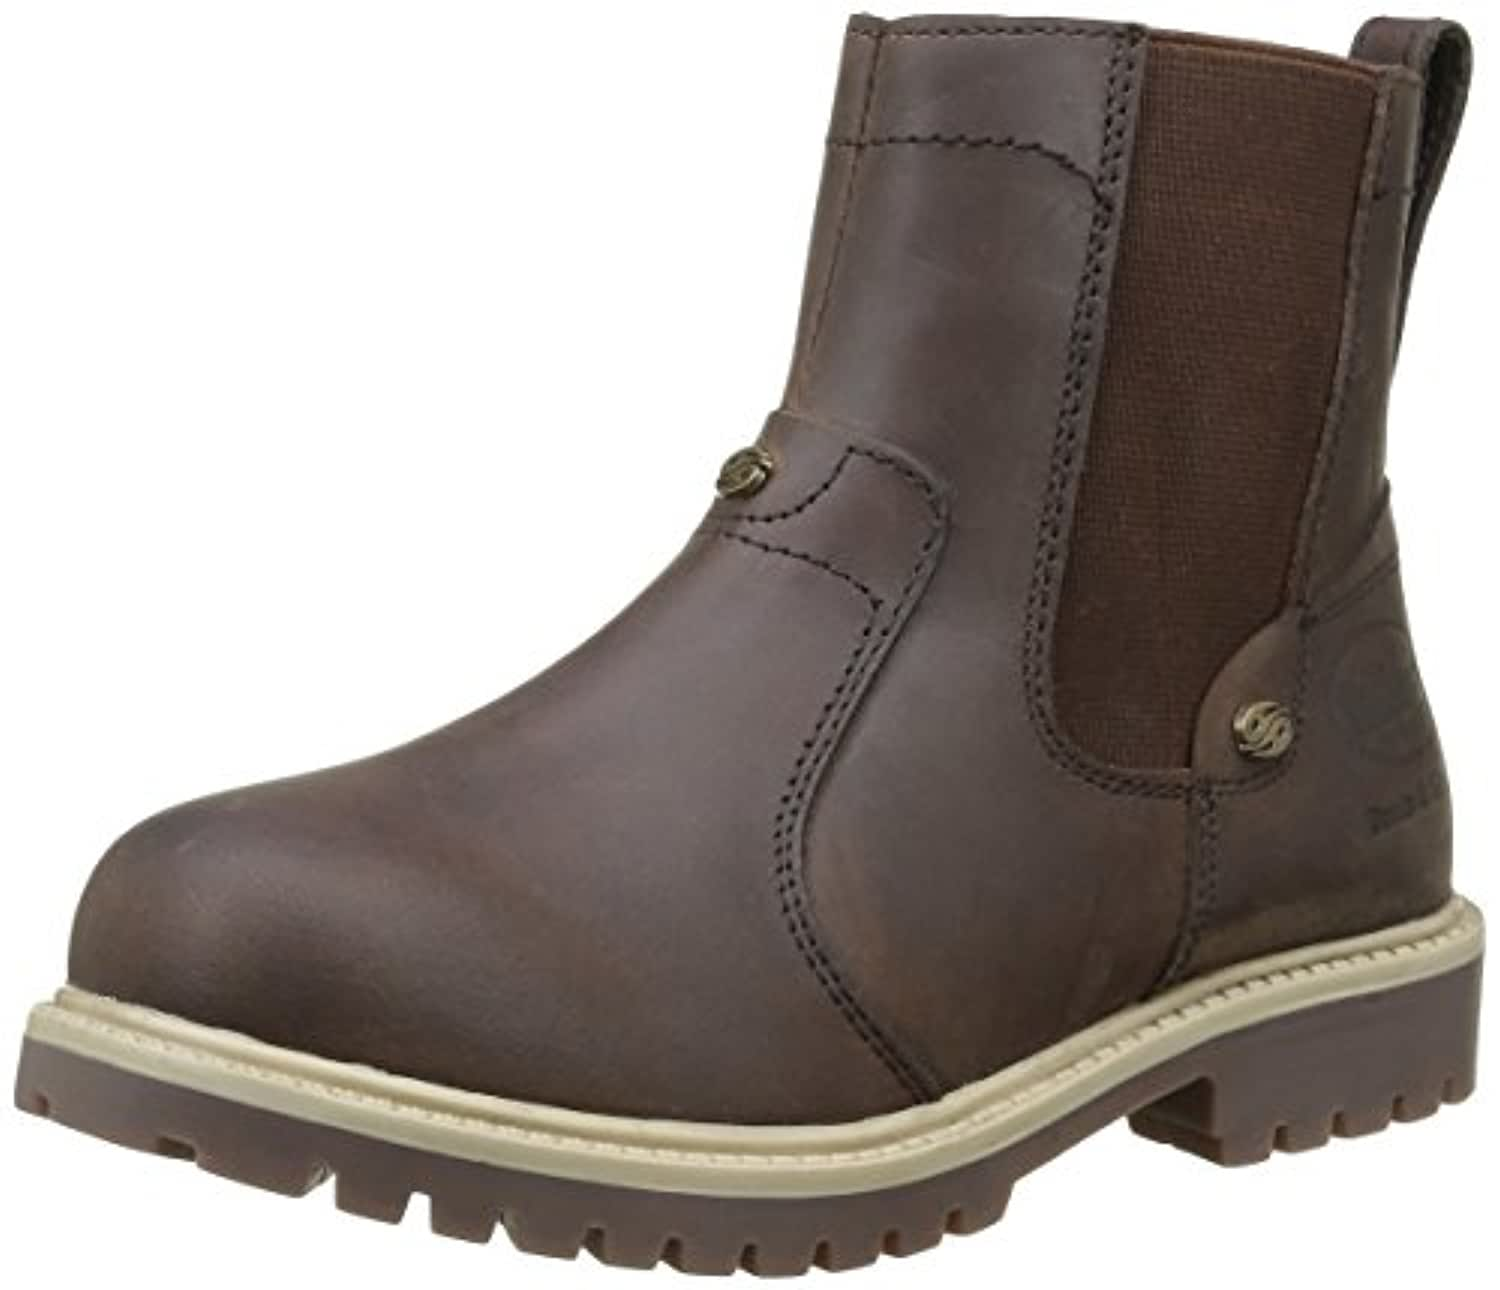 Dockers by Gerli 35fn720-400320, Unisex Kids' Warm-Lined Short-Shaft Boots and Bootees, Braun (Cafe 320), 1 UK